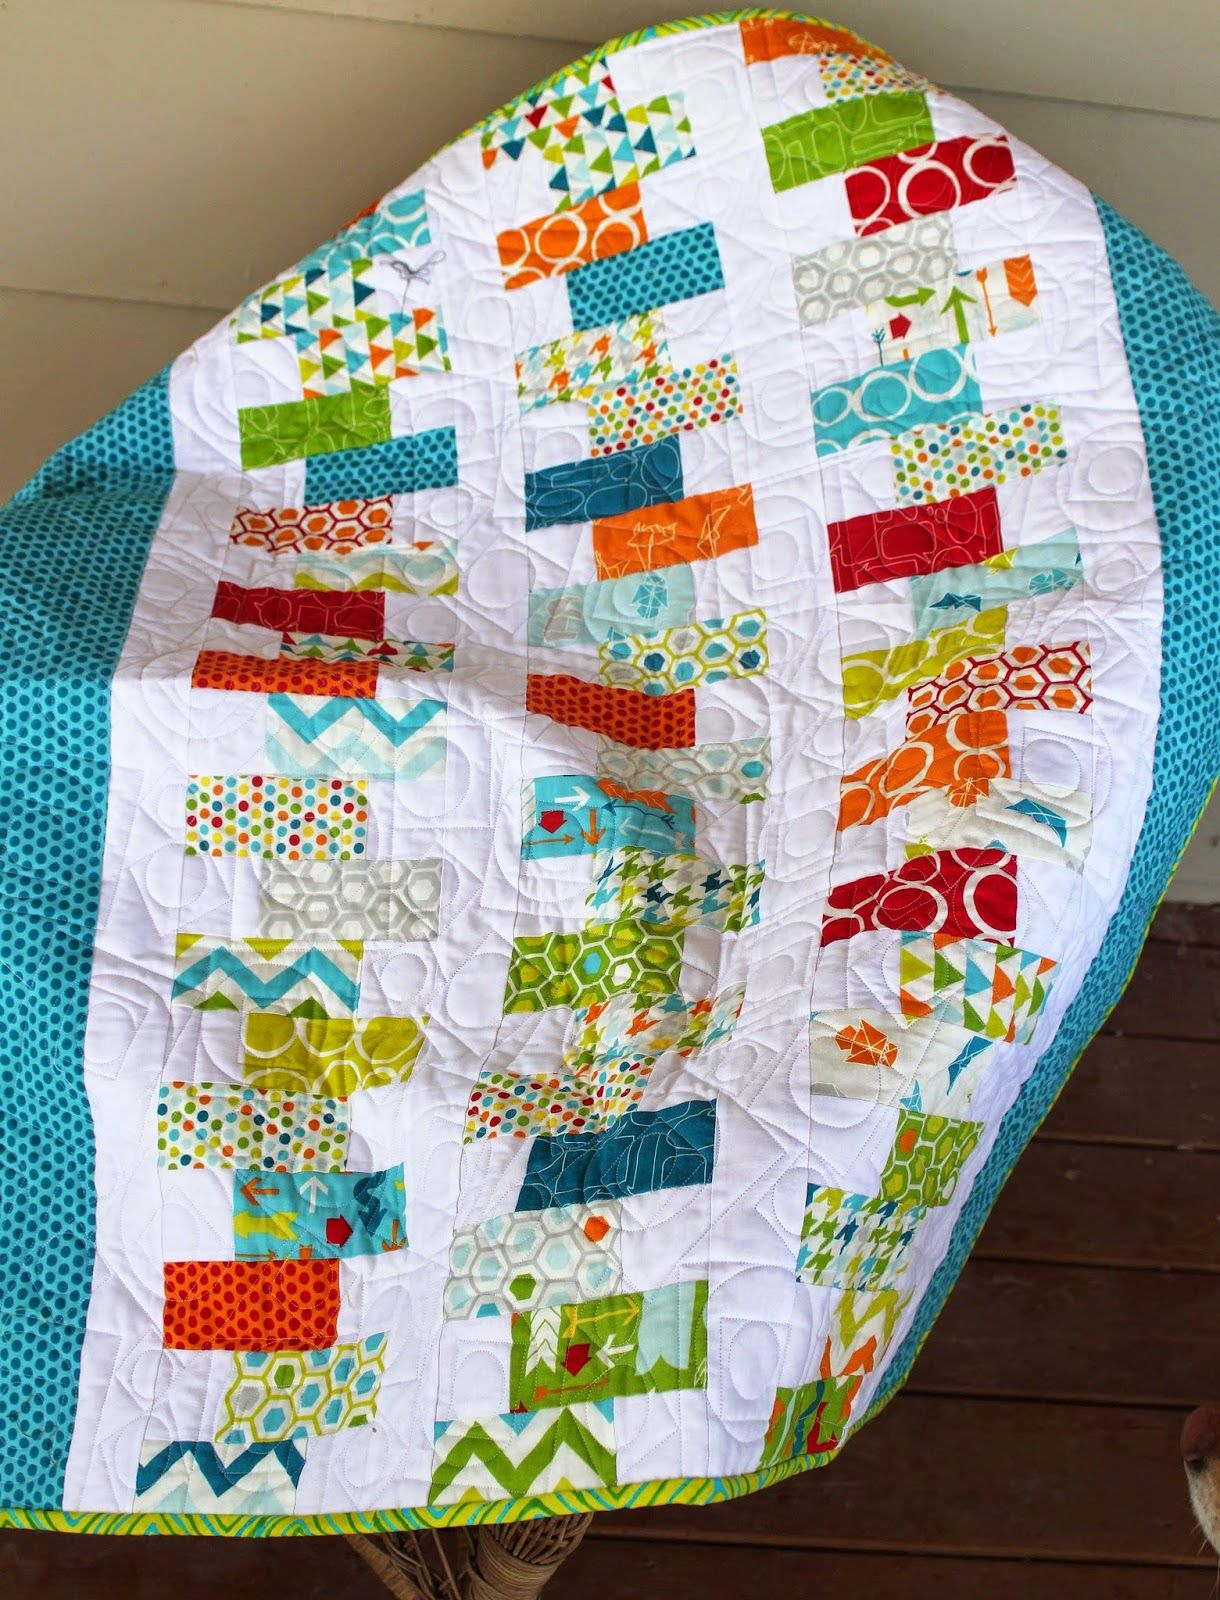 Kinder Quilt Patronen.Pin By Carol On Quilting Pinterest Quilts Patronen And Kinderen